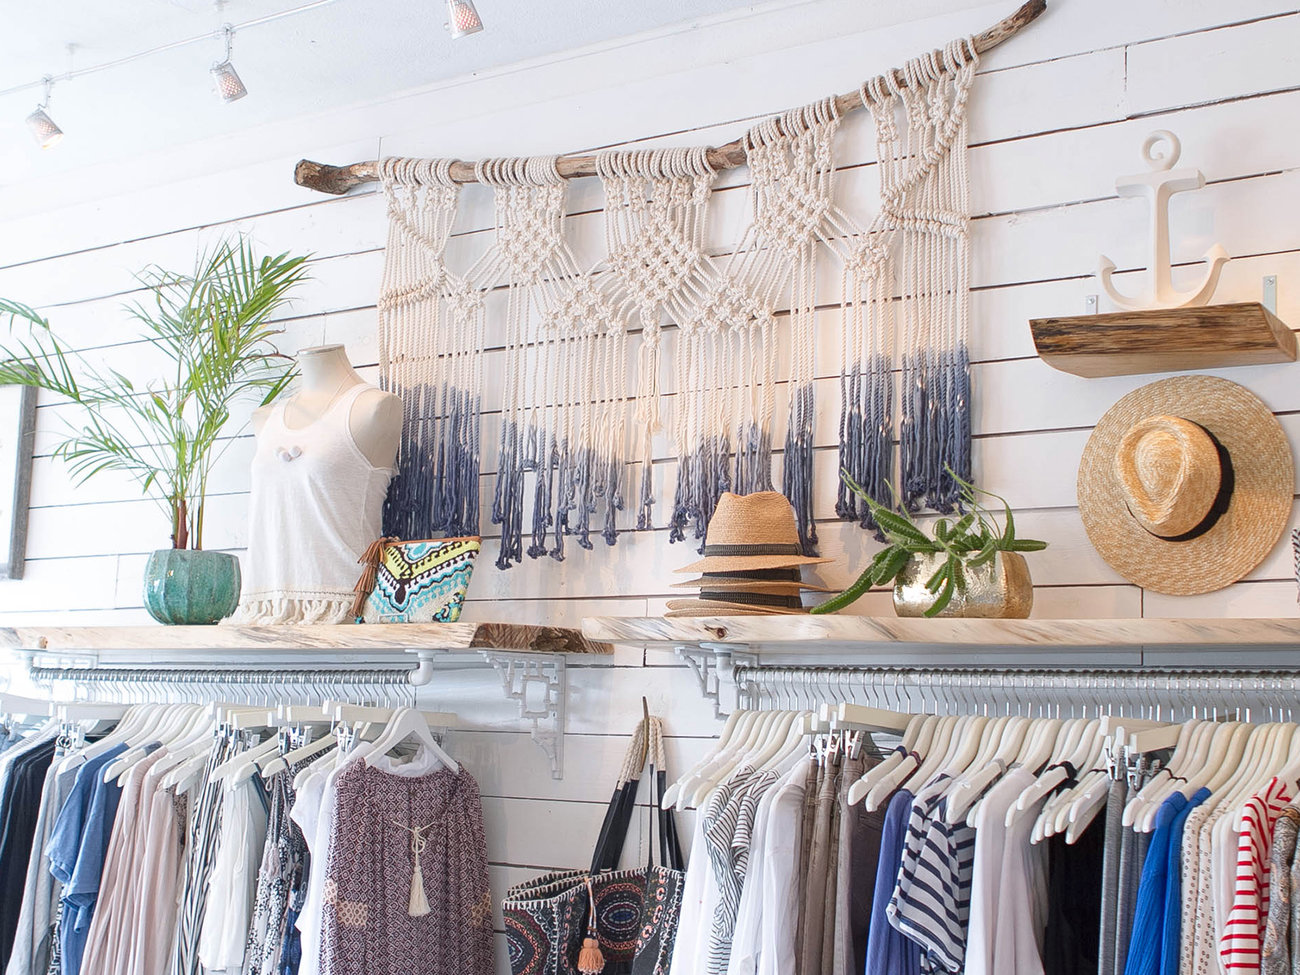 Olive Boutique Store in Oahu